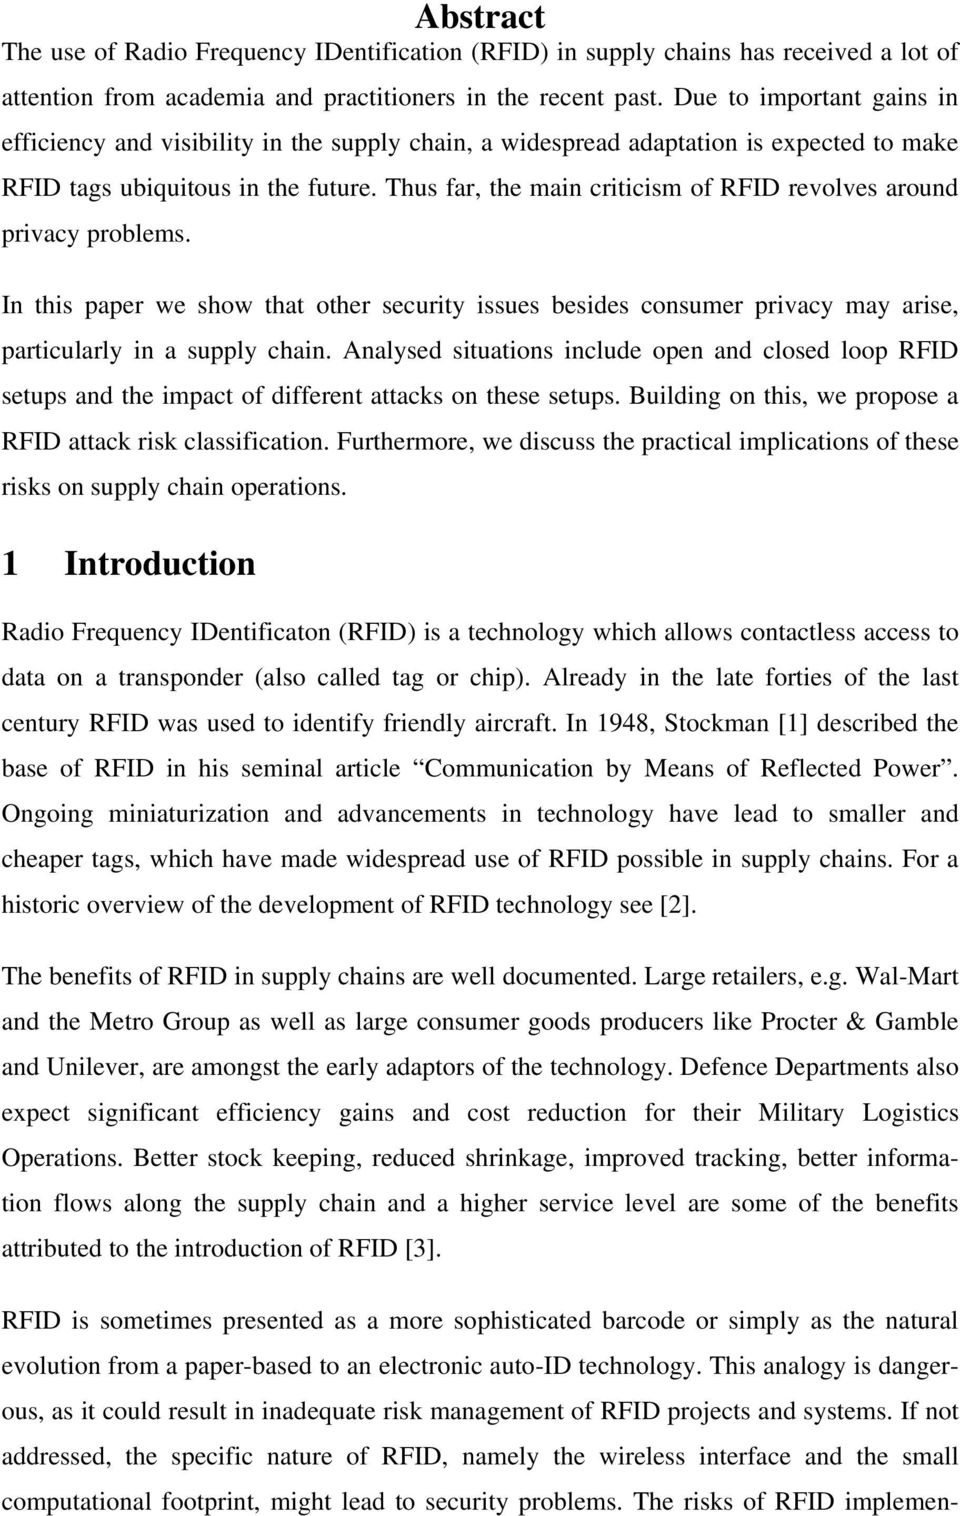 Thus far, the main criticism of RFID revolves around privacy problems. In this paper we show that other security issues besides consumer privacy may arise, particularly in a supply chain.